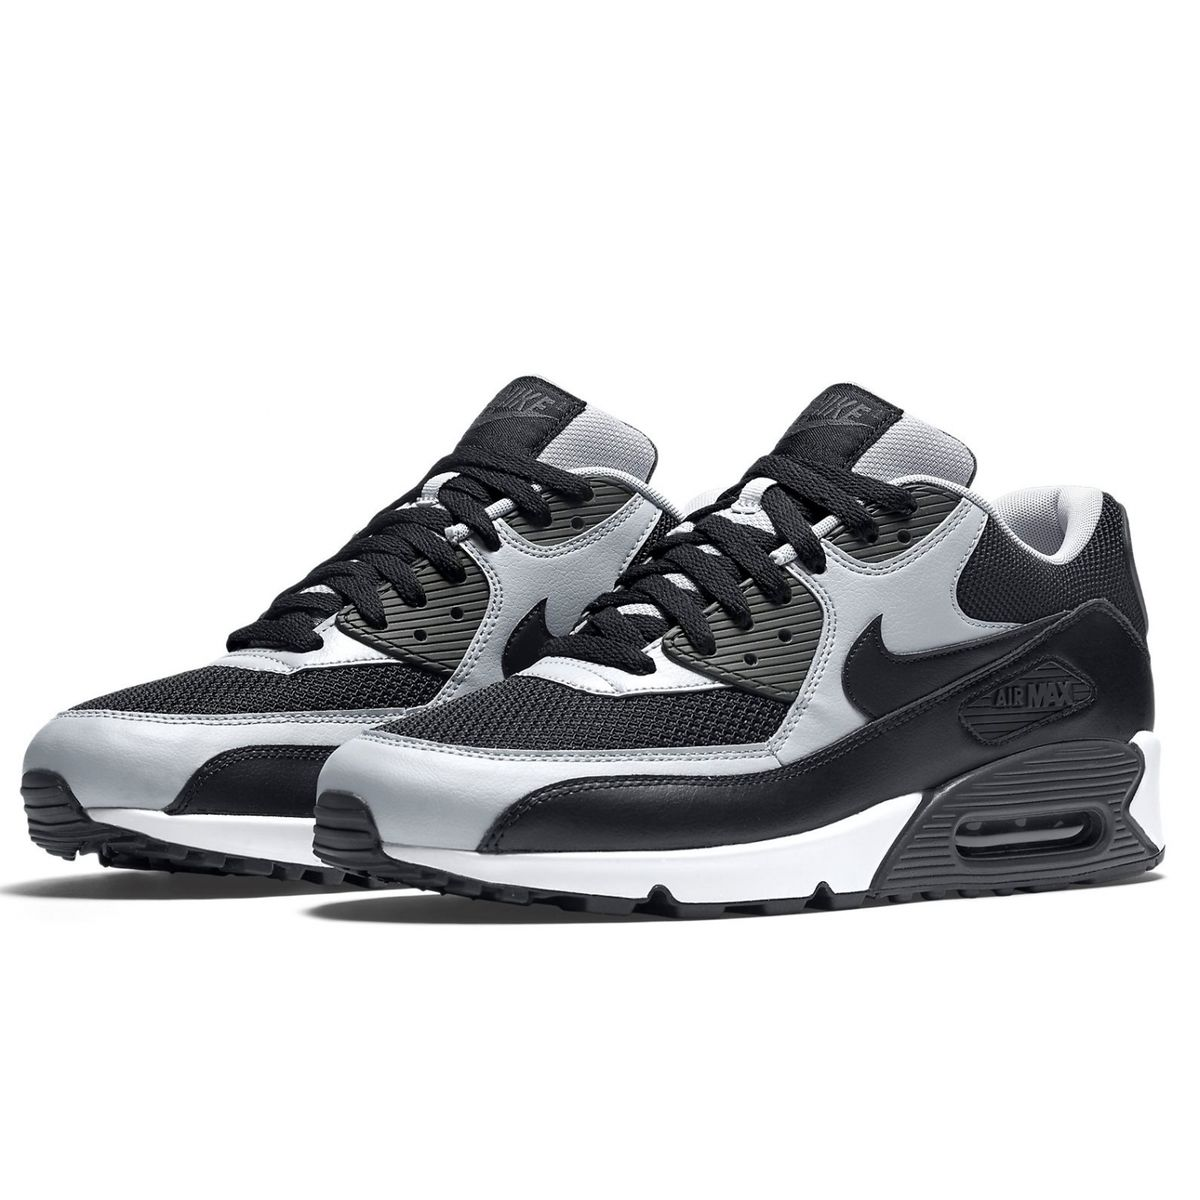 Baskets Air Max '90 Essential Taille : 46;40 12;41;43